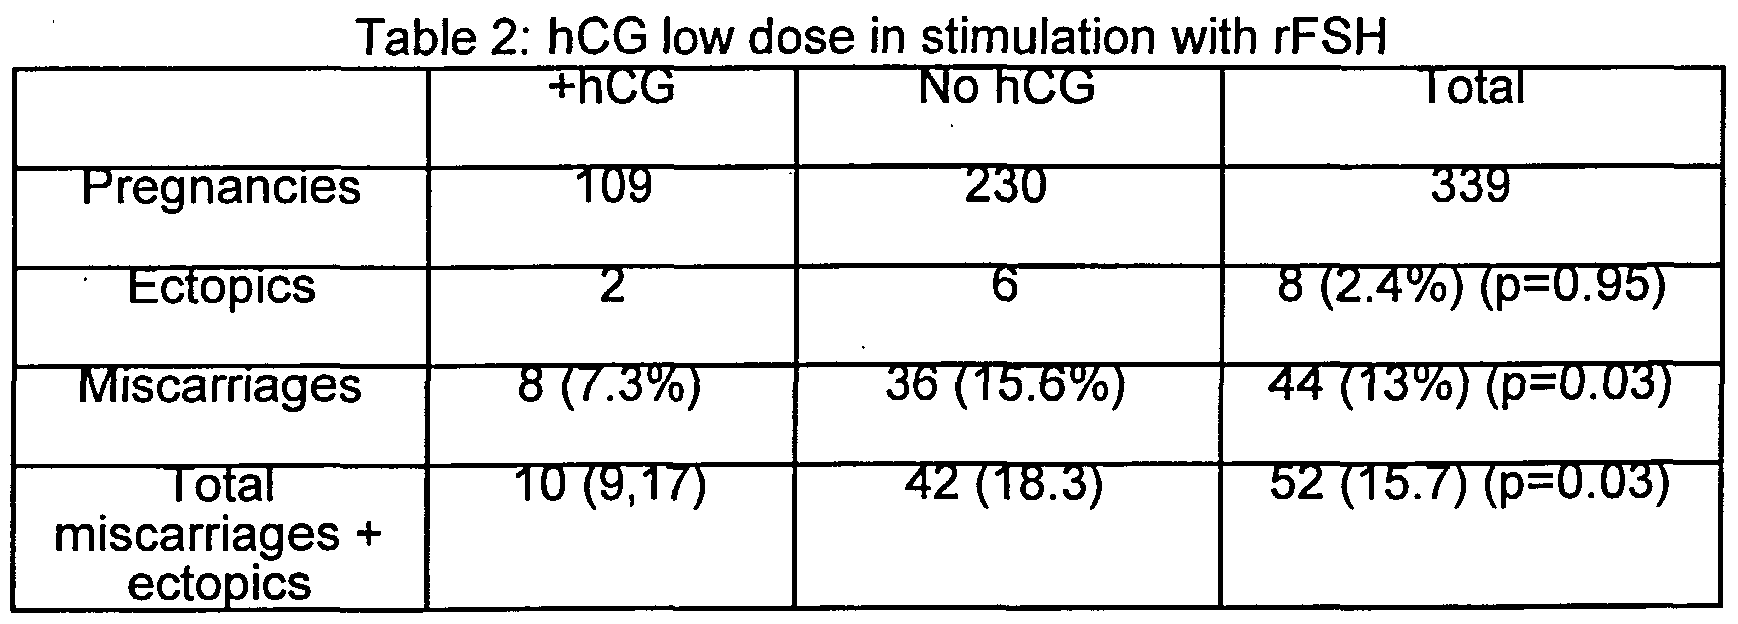 WO2003022302A2 - USE OF hCG IN CONTROLLED OVARIAN HYPERSTIMULATION